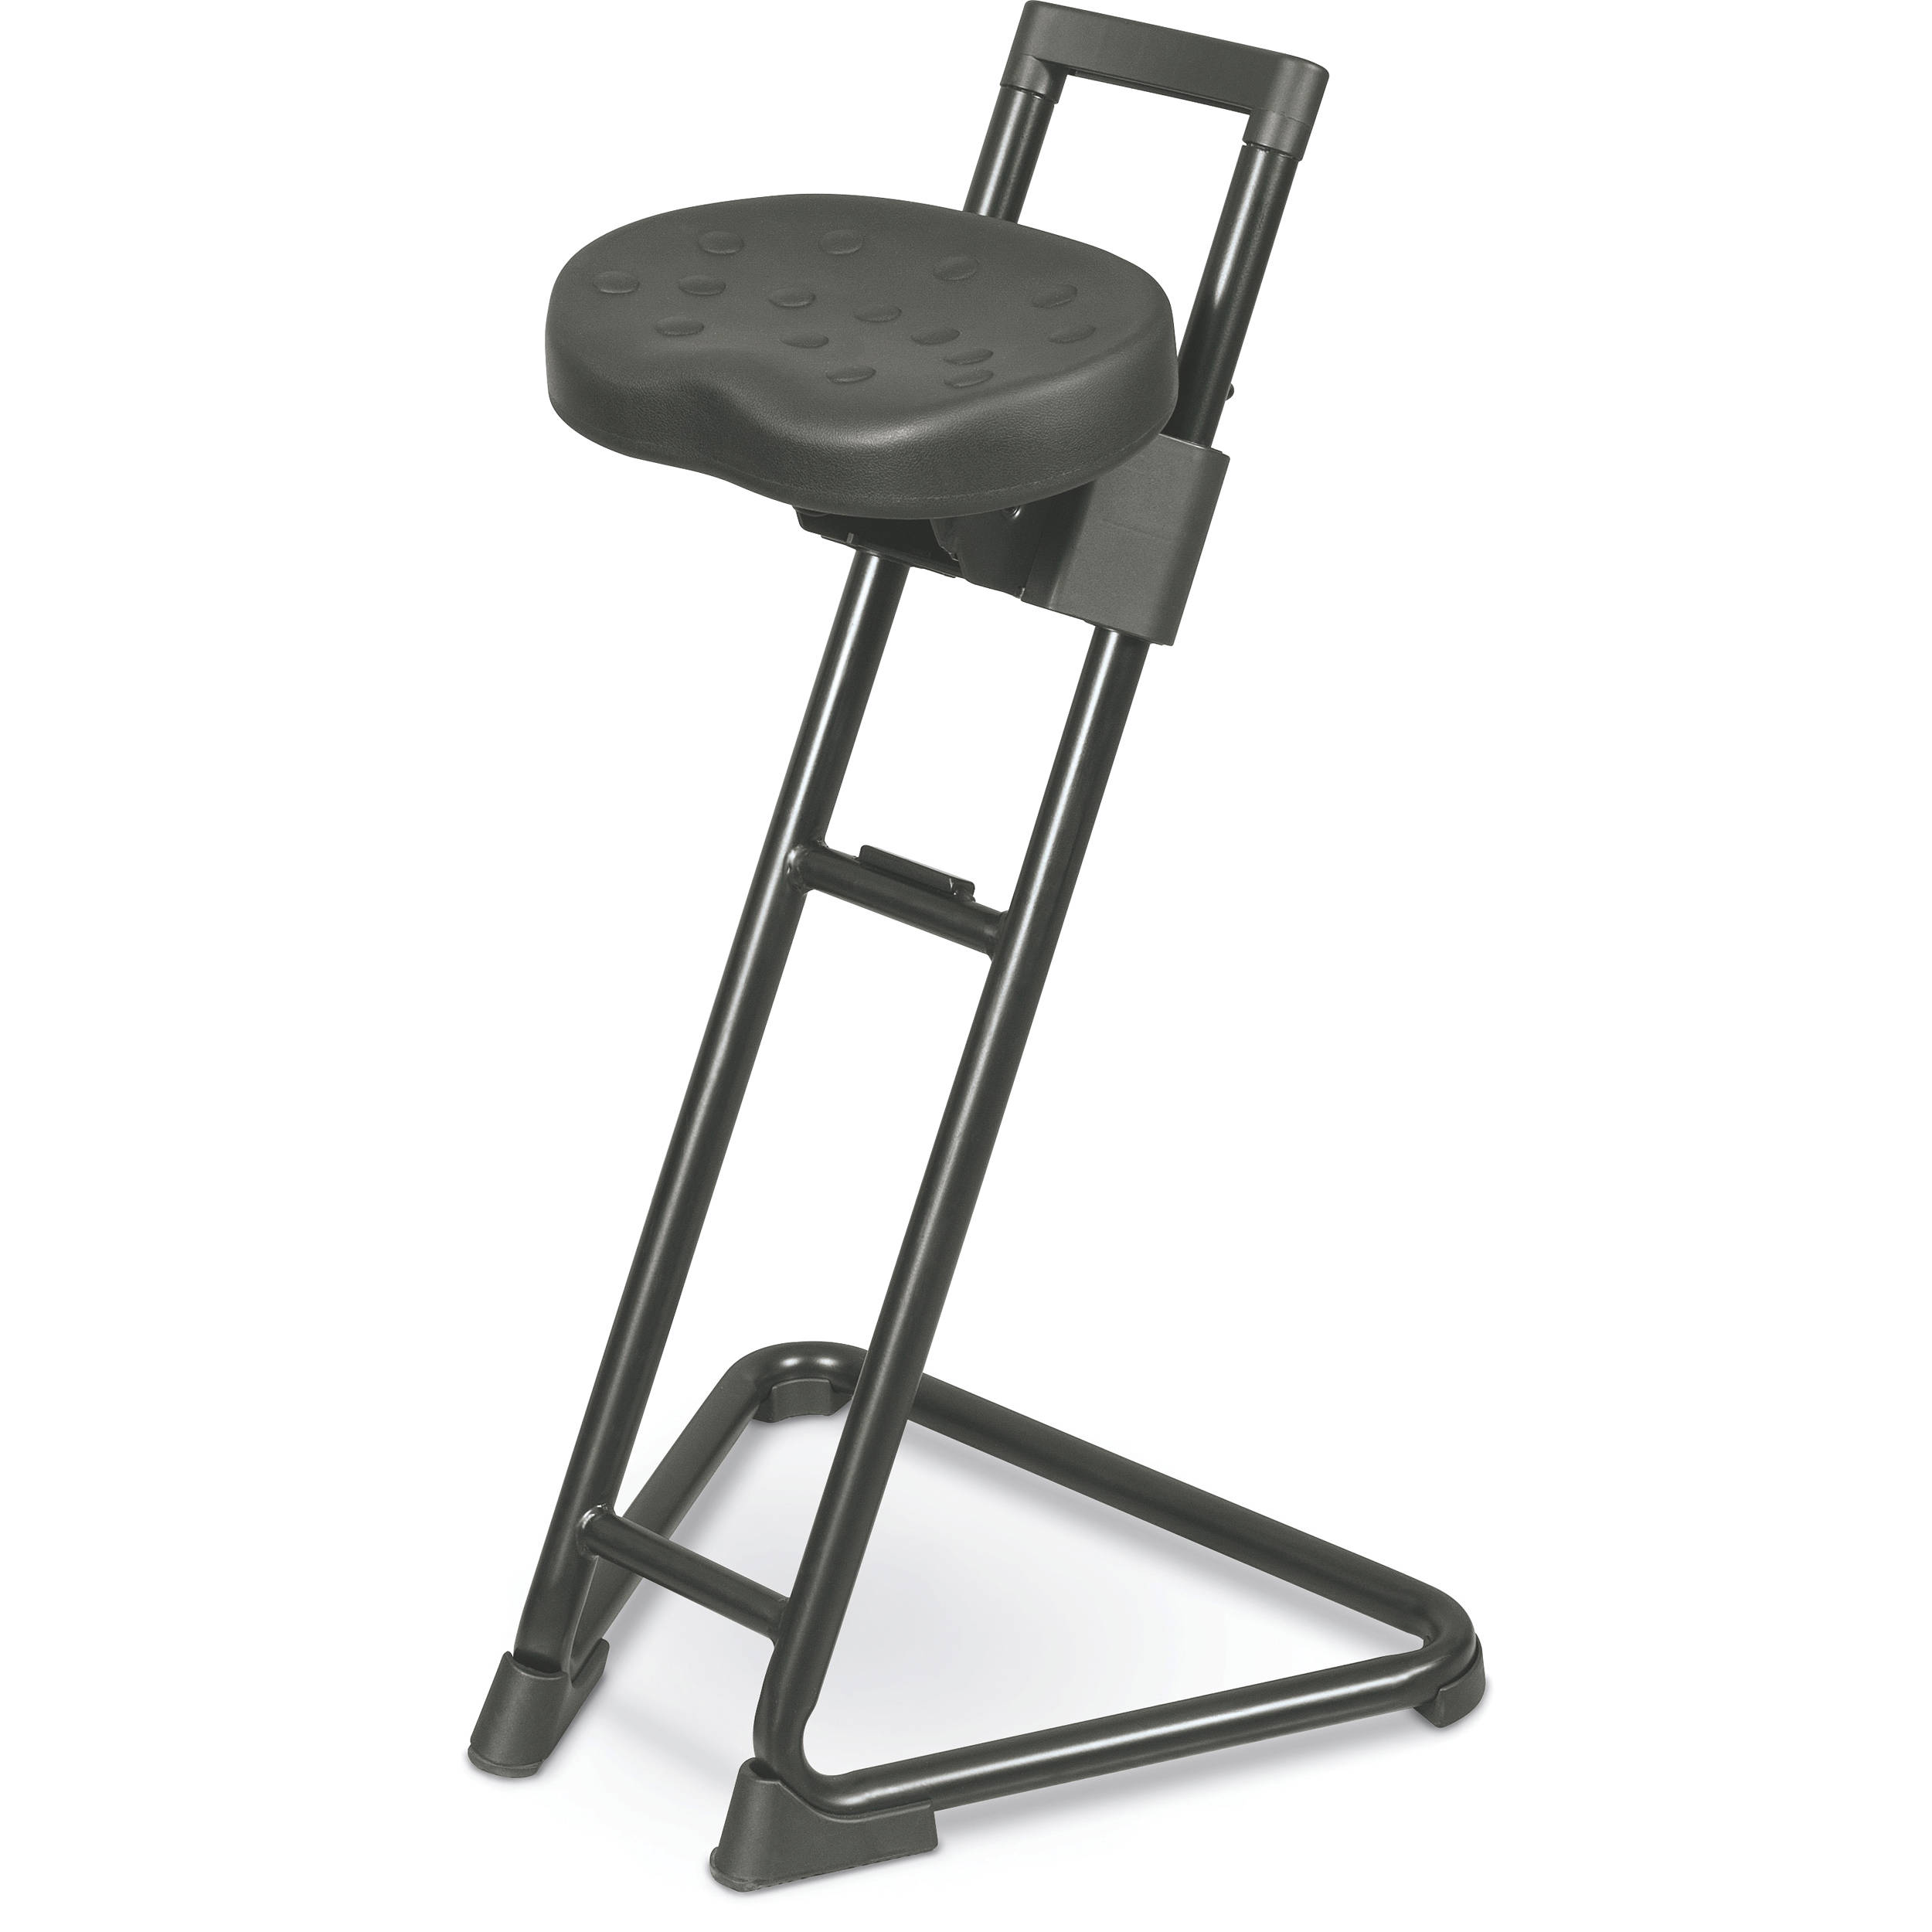 Etonnant Balt 34797 Up Rite Height Adjustable Stool